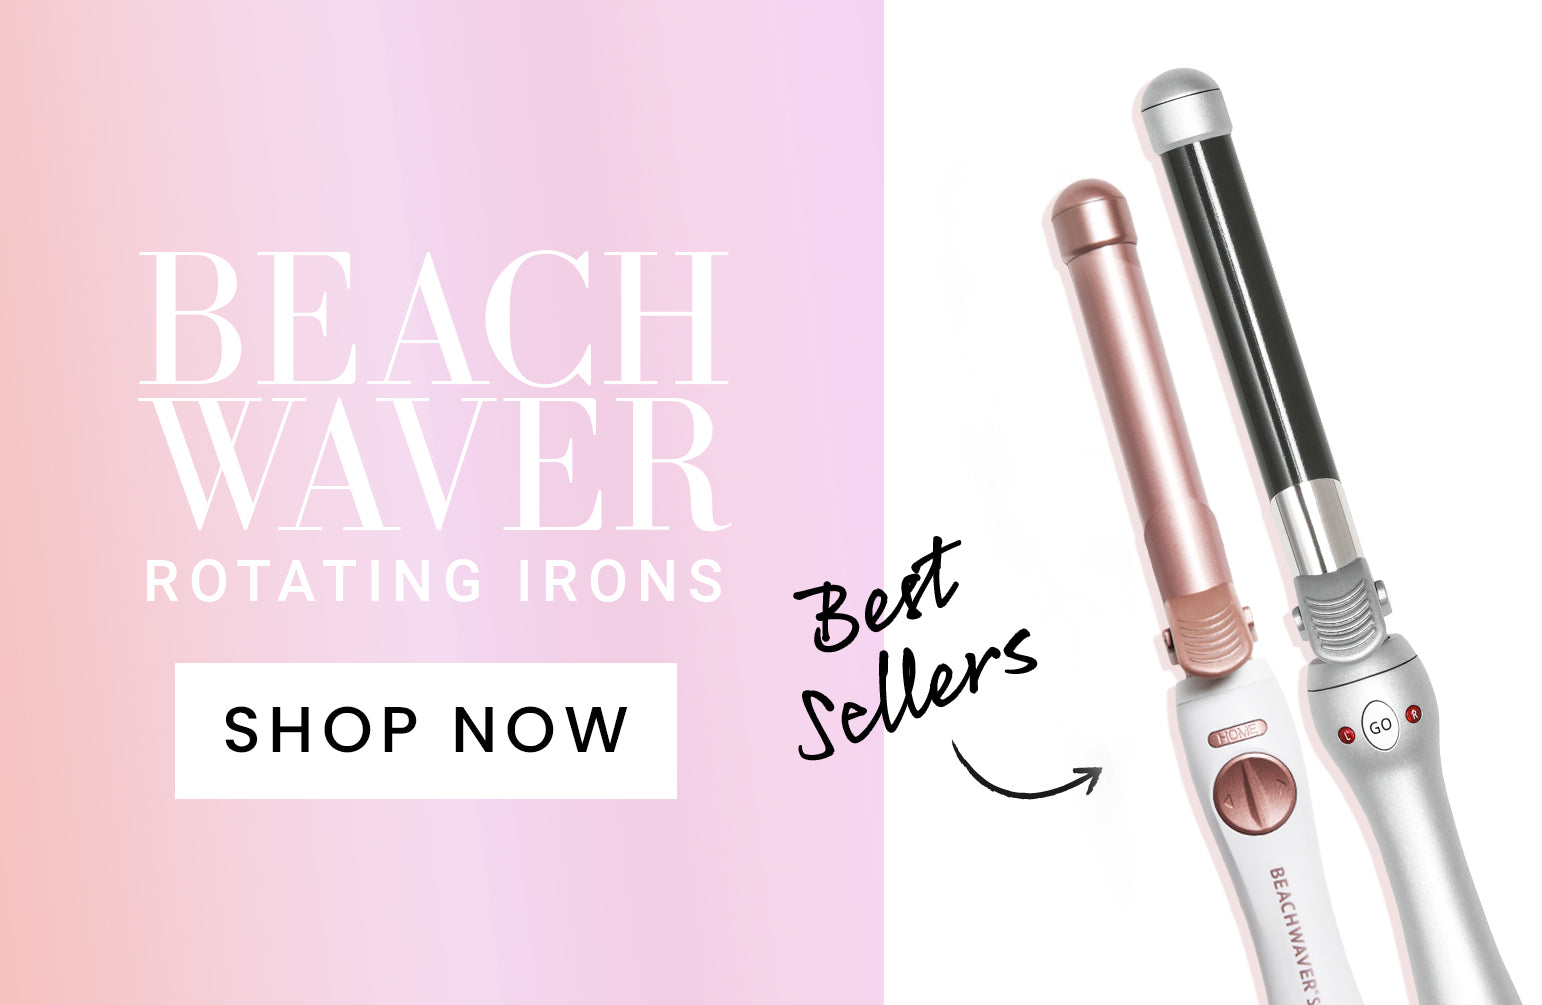 Shop Beachwaver